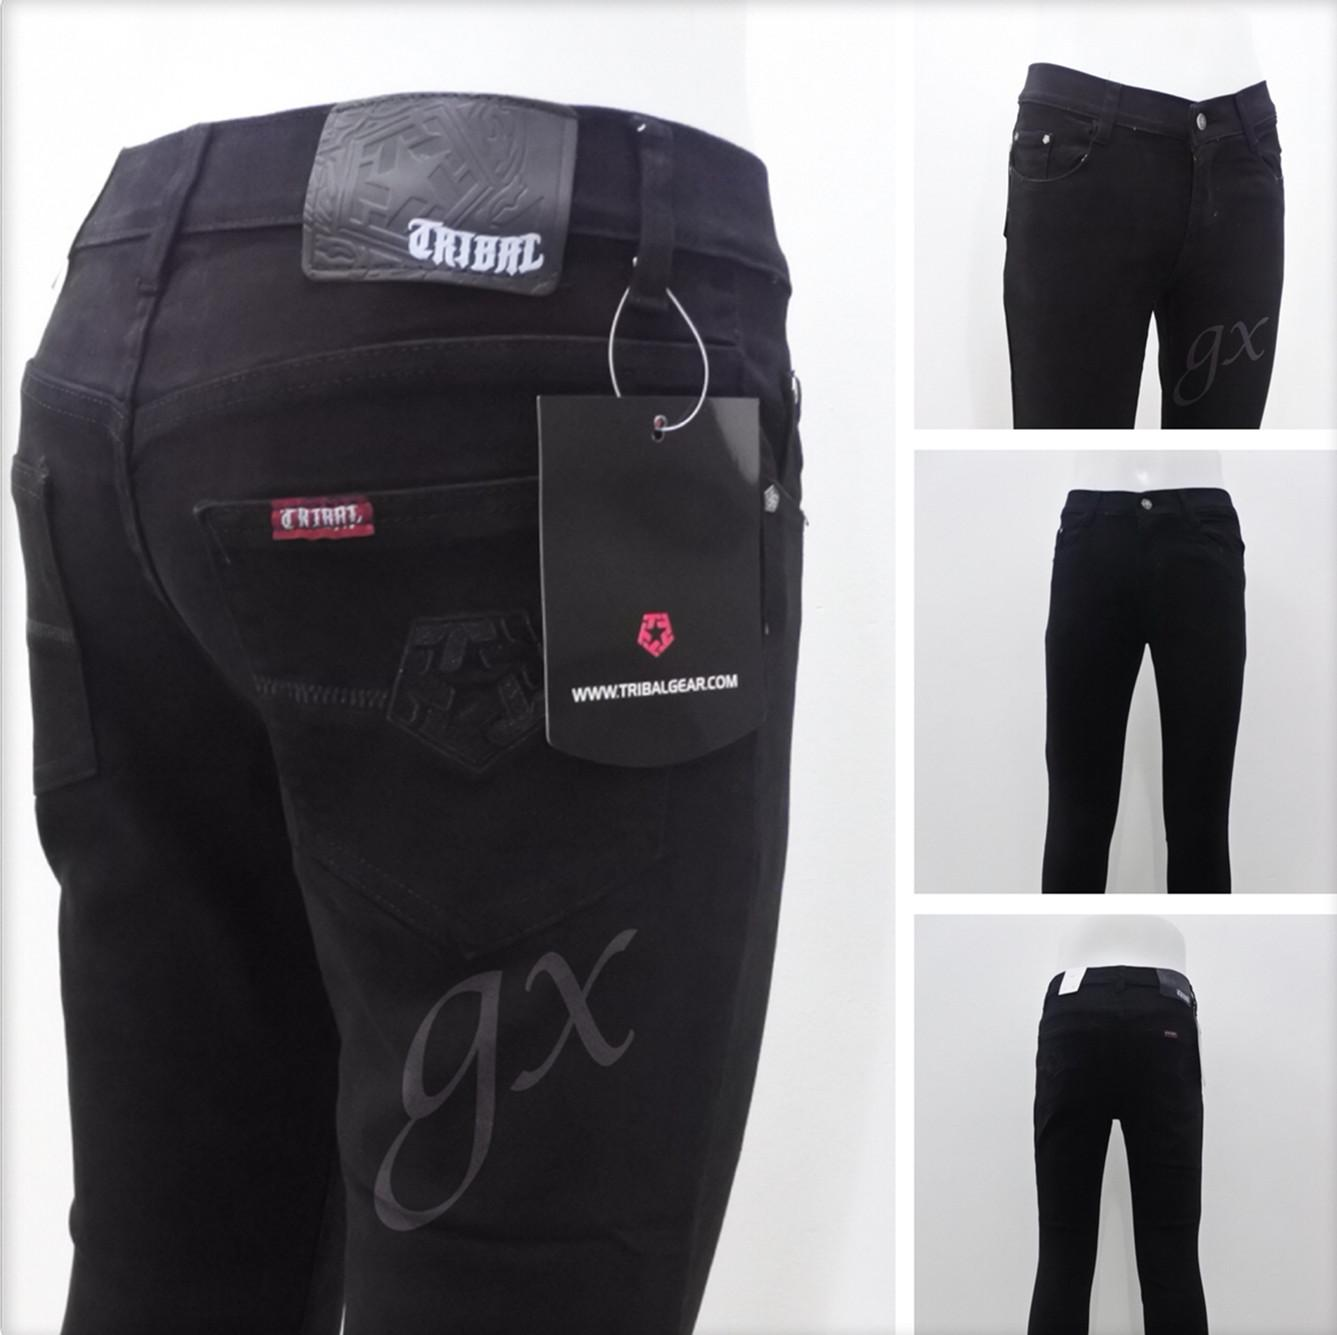 d498f951cfac06 Sk Fashion Mens Black strach Skinny jeans, Comfortable, Trendy Jeans Pants